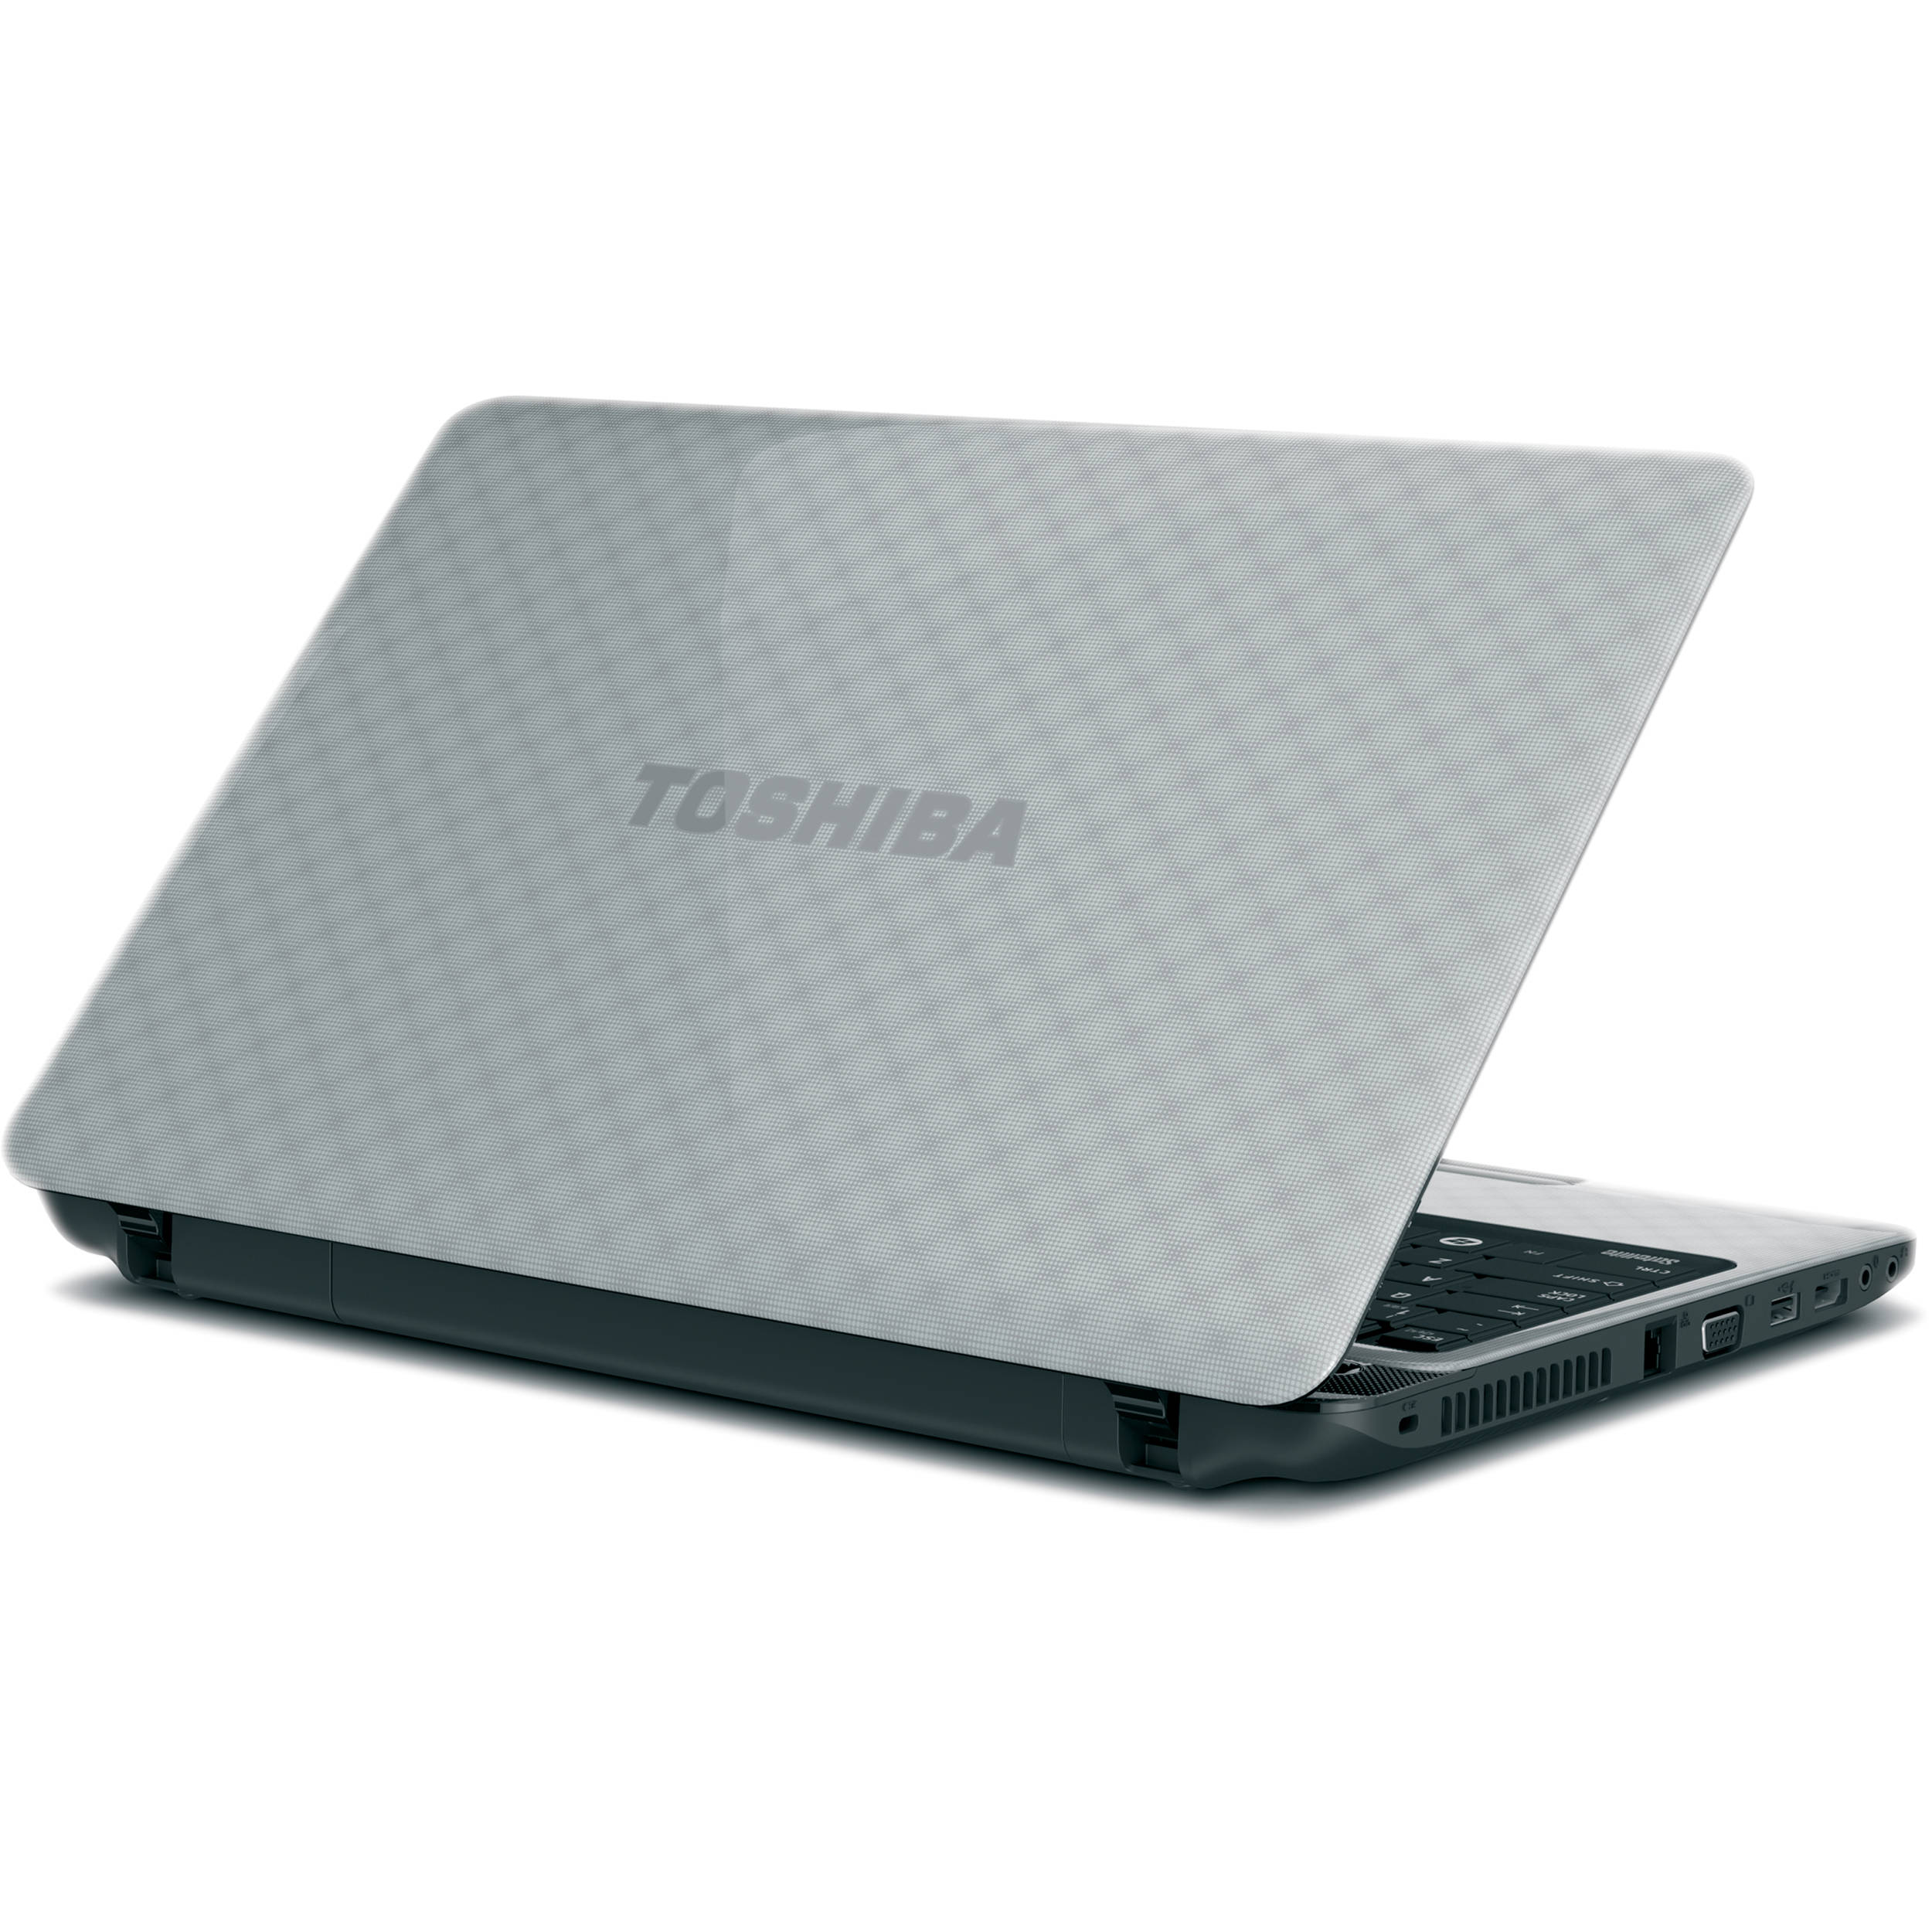 Toshiba Satellite L755D AMD Assist Drivers for Windows XP